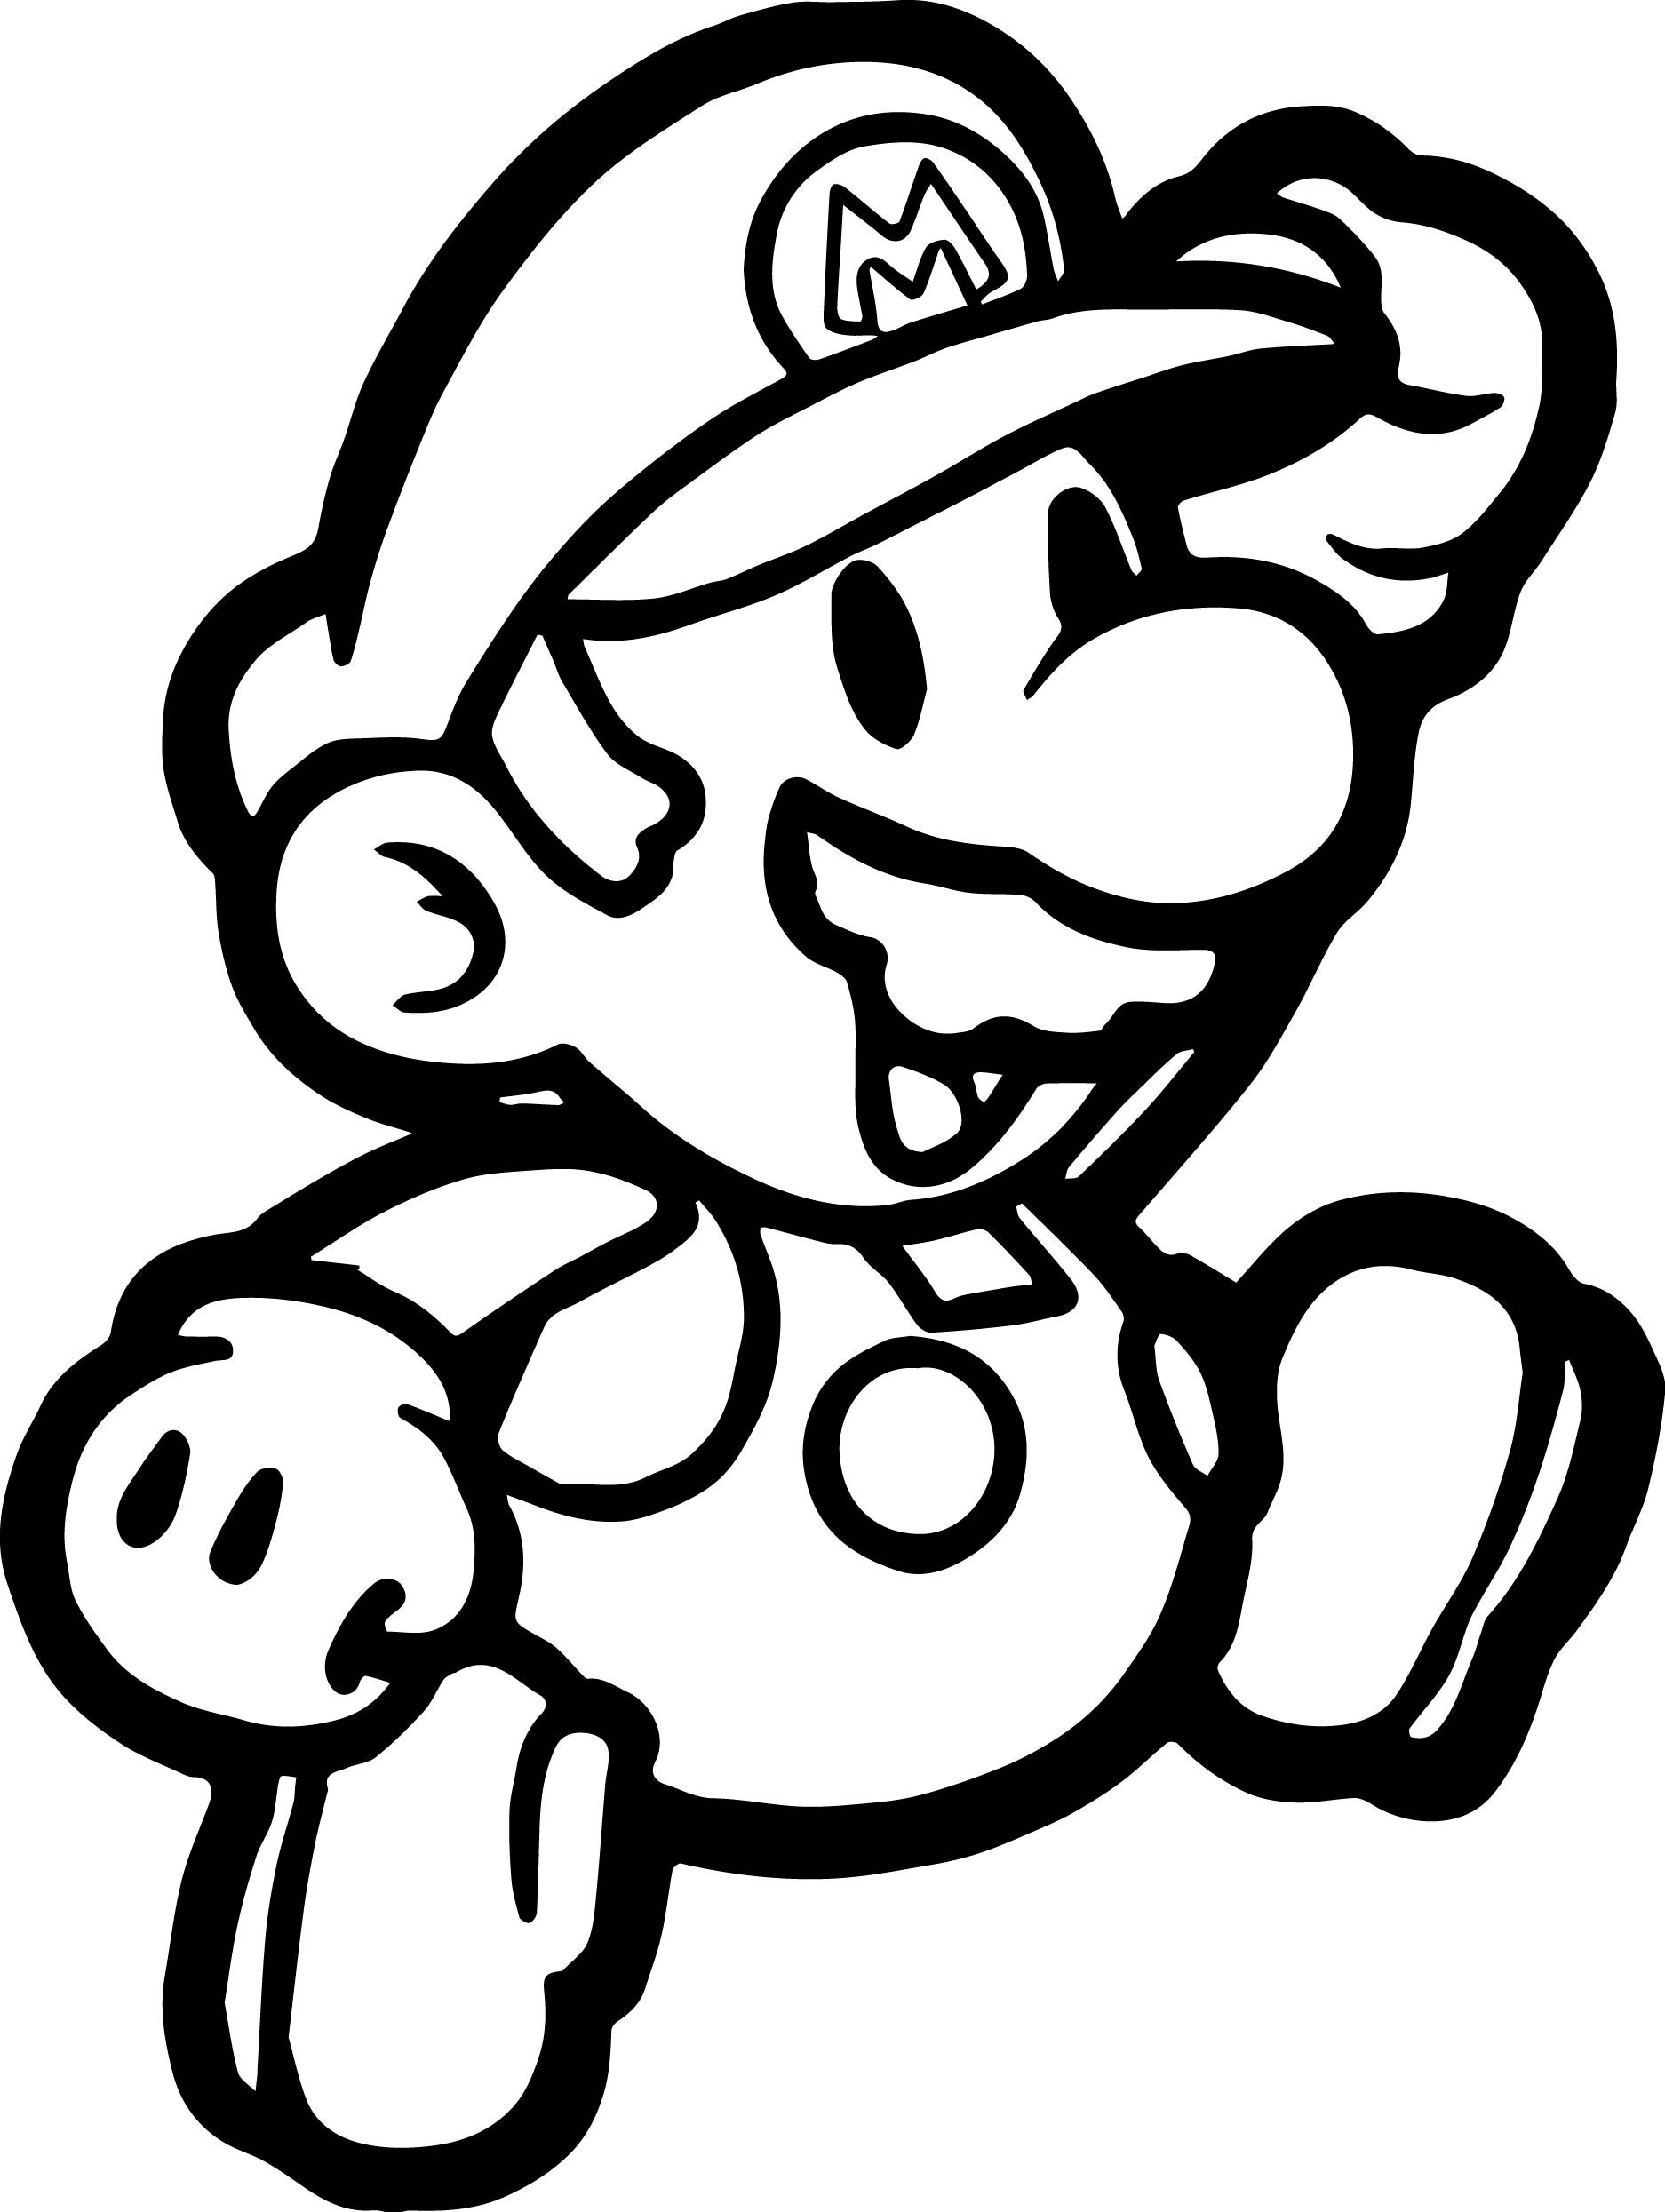 mario picture to color coloring pages mario coloring pages free and printable picture mario color to